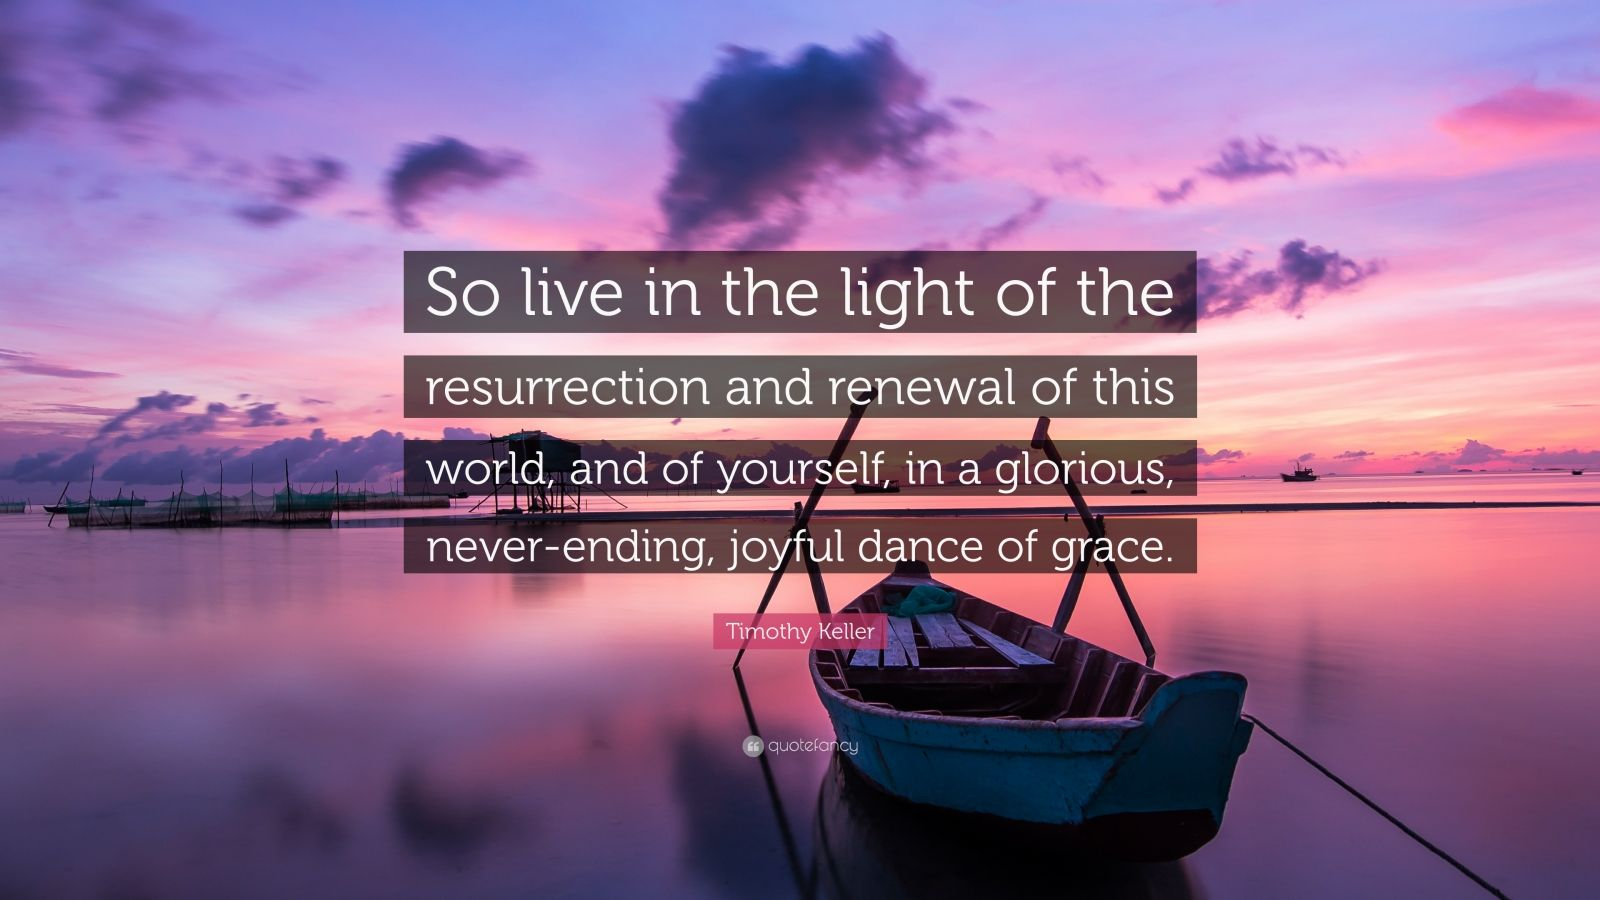 """Timothy Keller Quote: """"So live in the light of the resurrection and renewal of this world, and of yourself, in a glorious, never-ending, joyful dance of grace."""""""